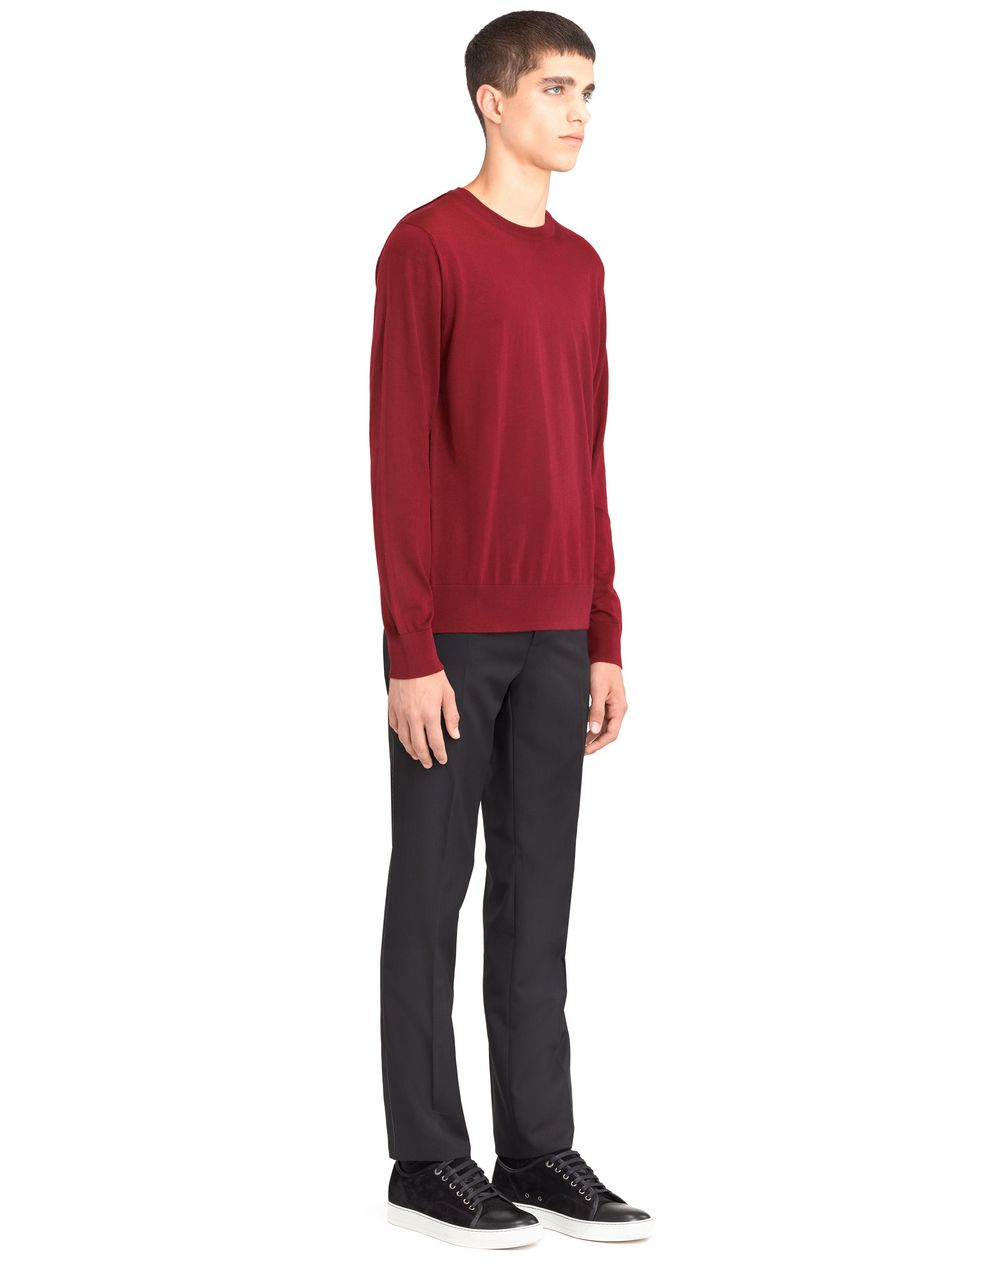 Crew neck sweater - Lanvin